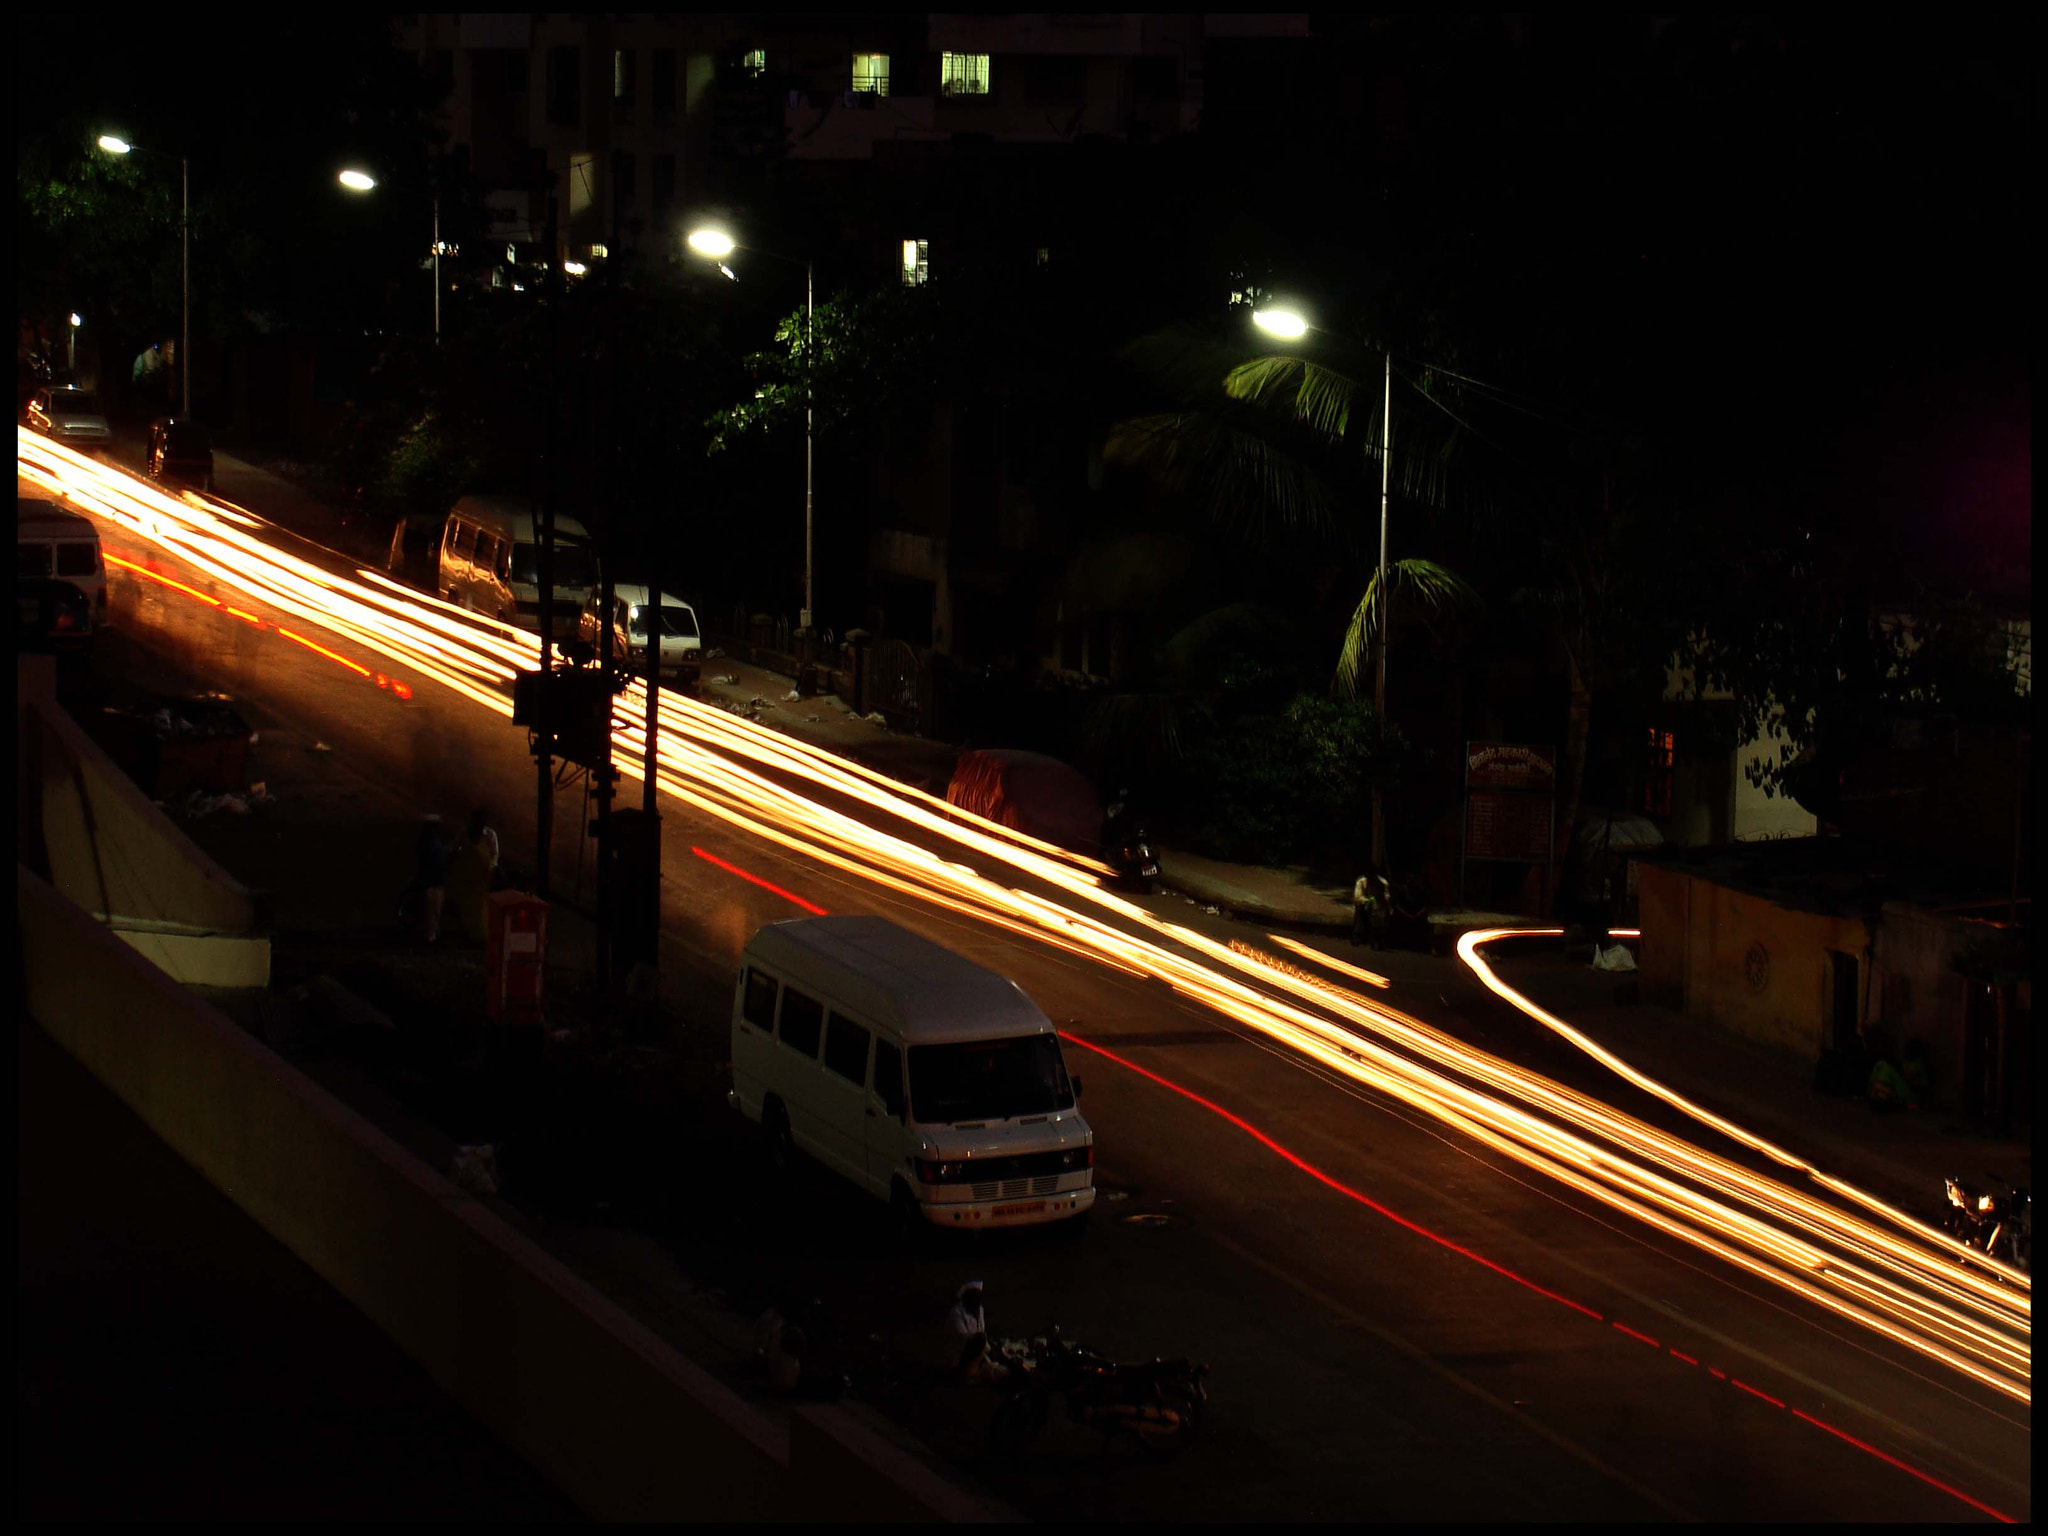 Photograph no time.. by Durga Dixit on 500px